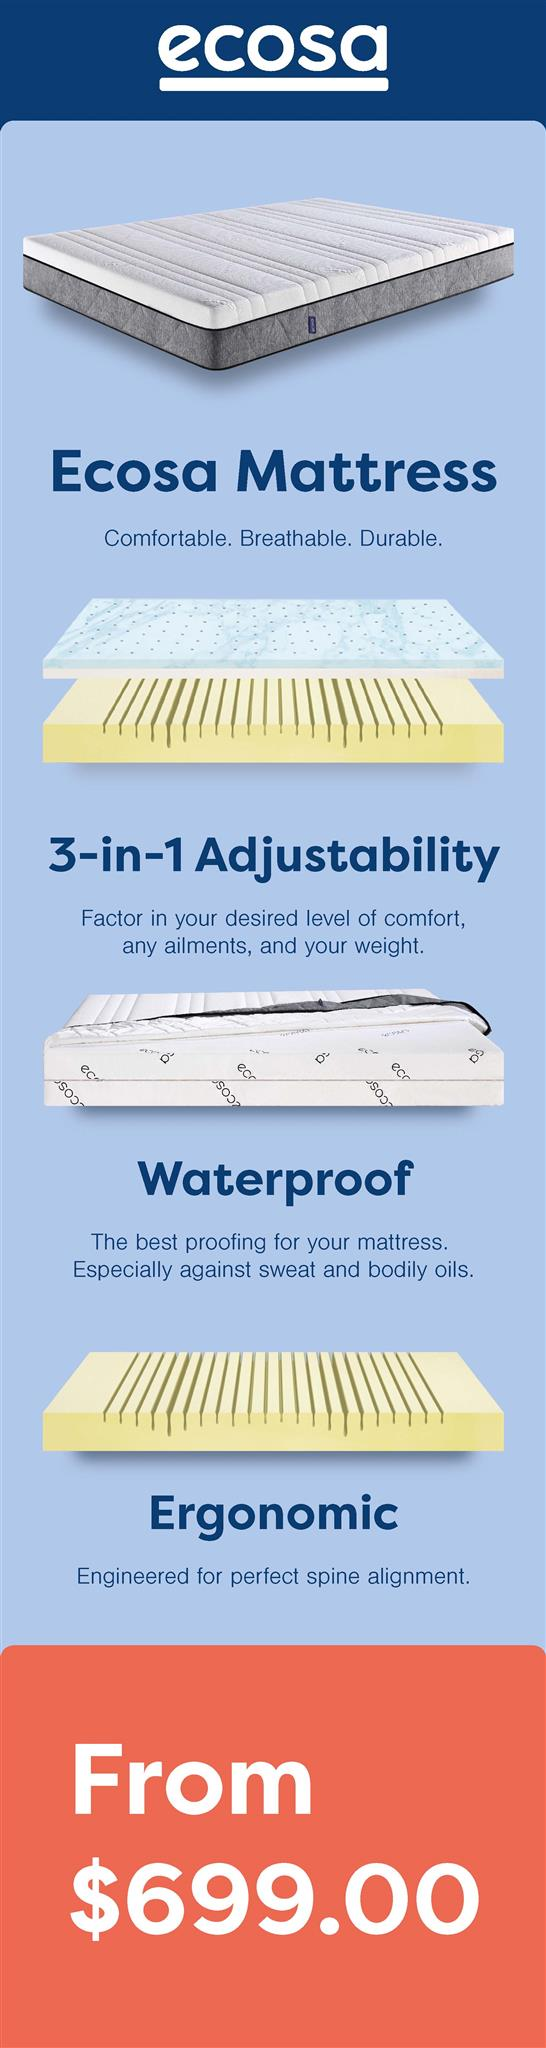 unpacking ecosa mattress